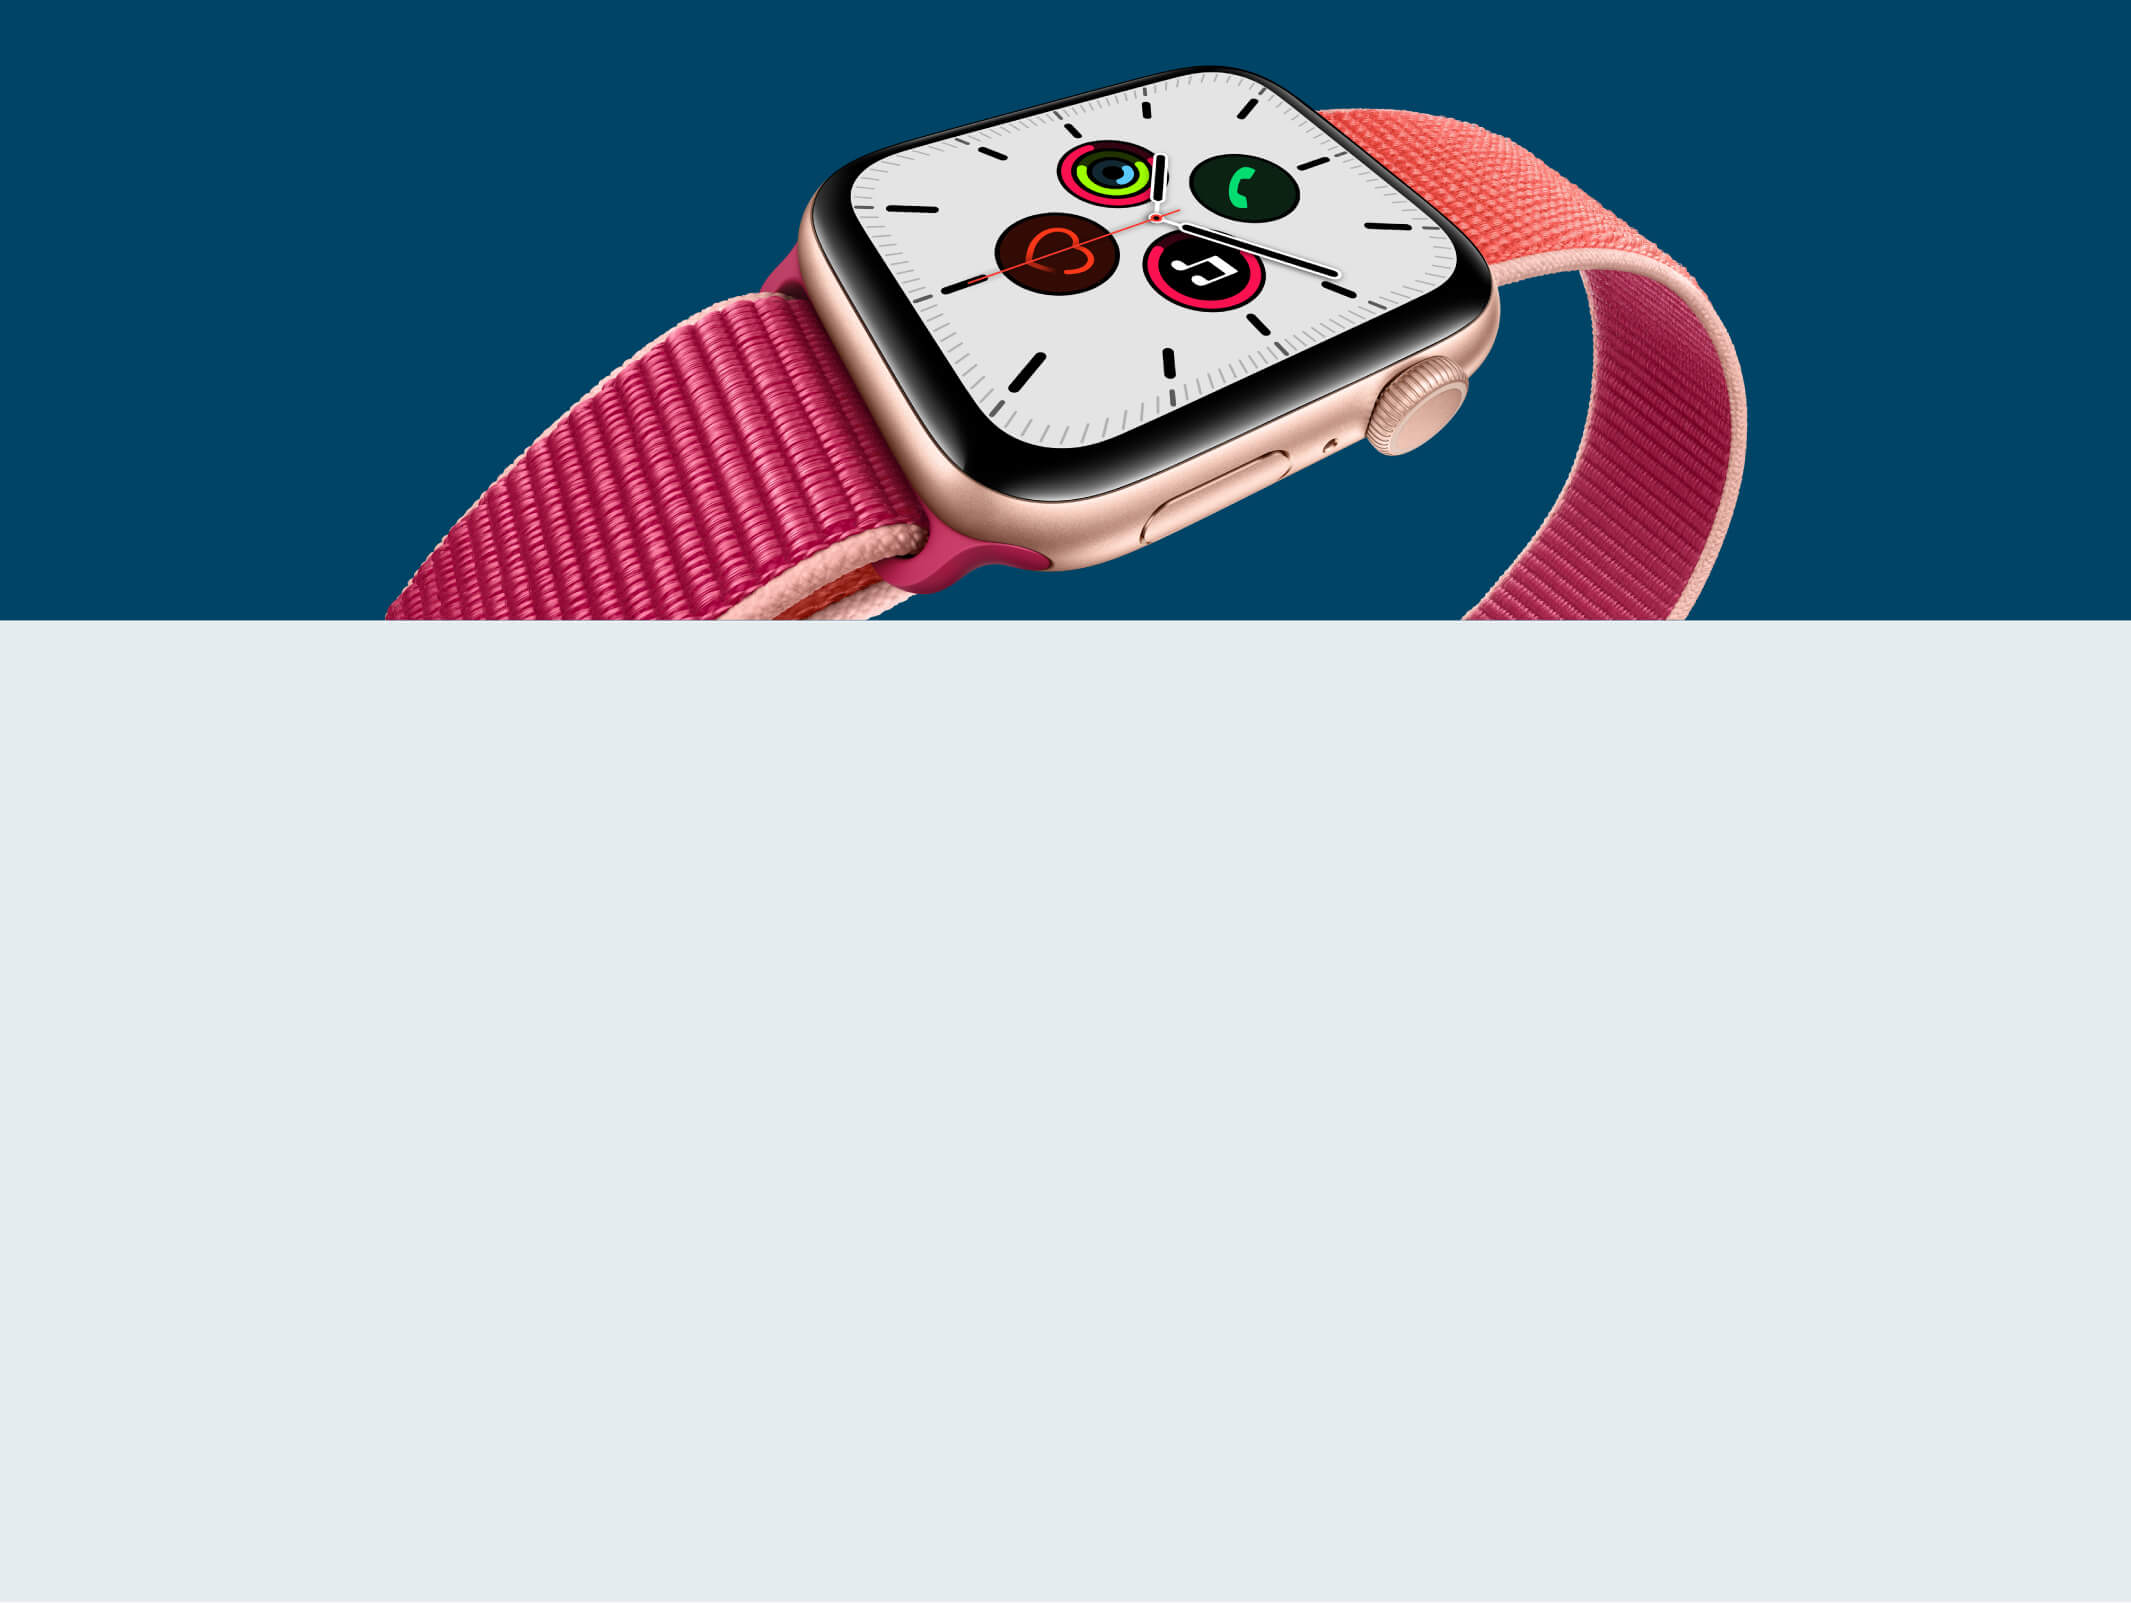 Apple Watch Series 5 Main